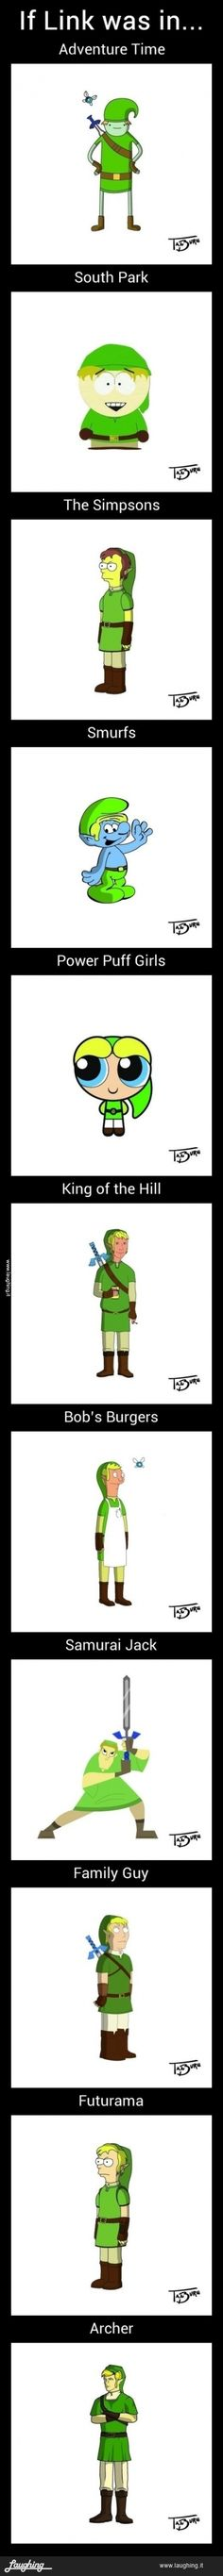 Link in other cartoons